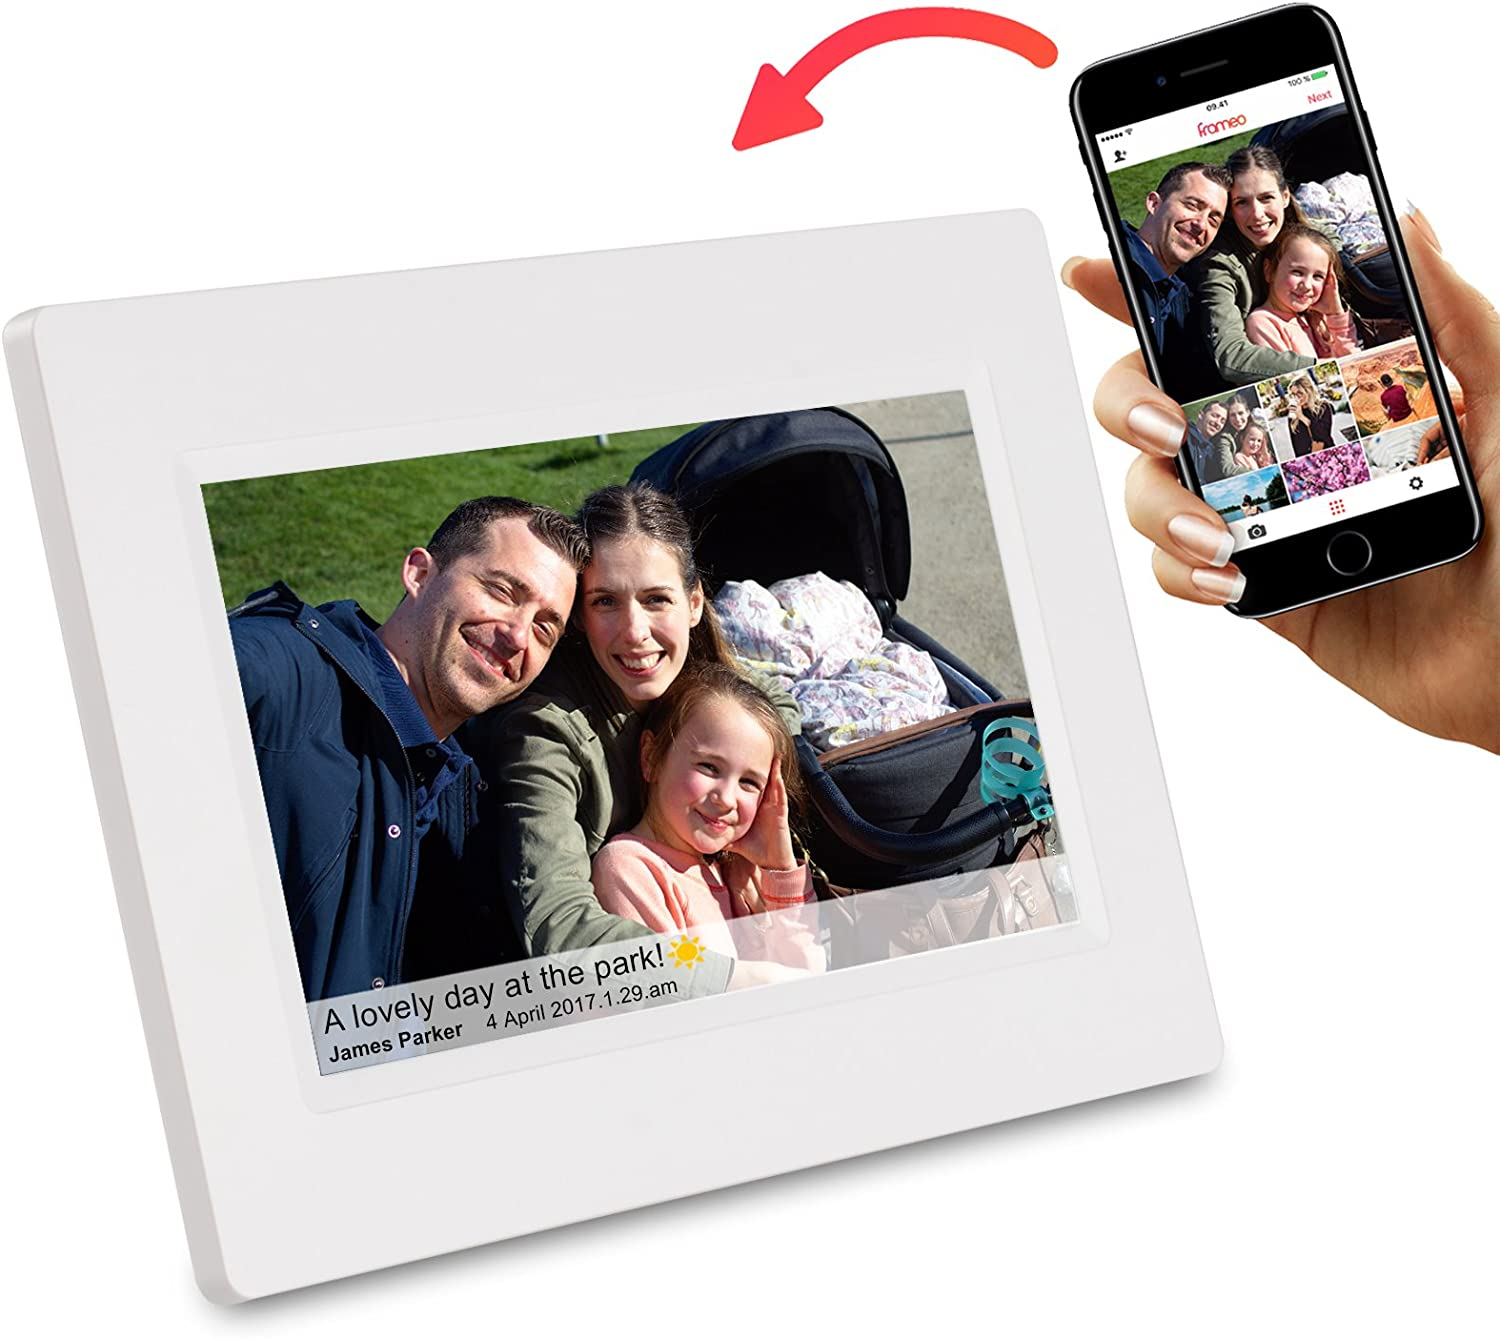 Feelcare 7 Inch Smart WiFi Digital Picture Frame with Touch Screen, Send Photos or Small Videos from Anywhere, IPS LCD Panel, Built in 8GB Memory, Wall-Mountable, Portrait&Landscape(White)